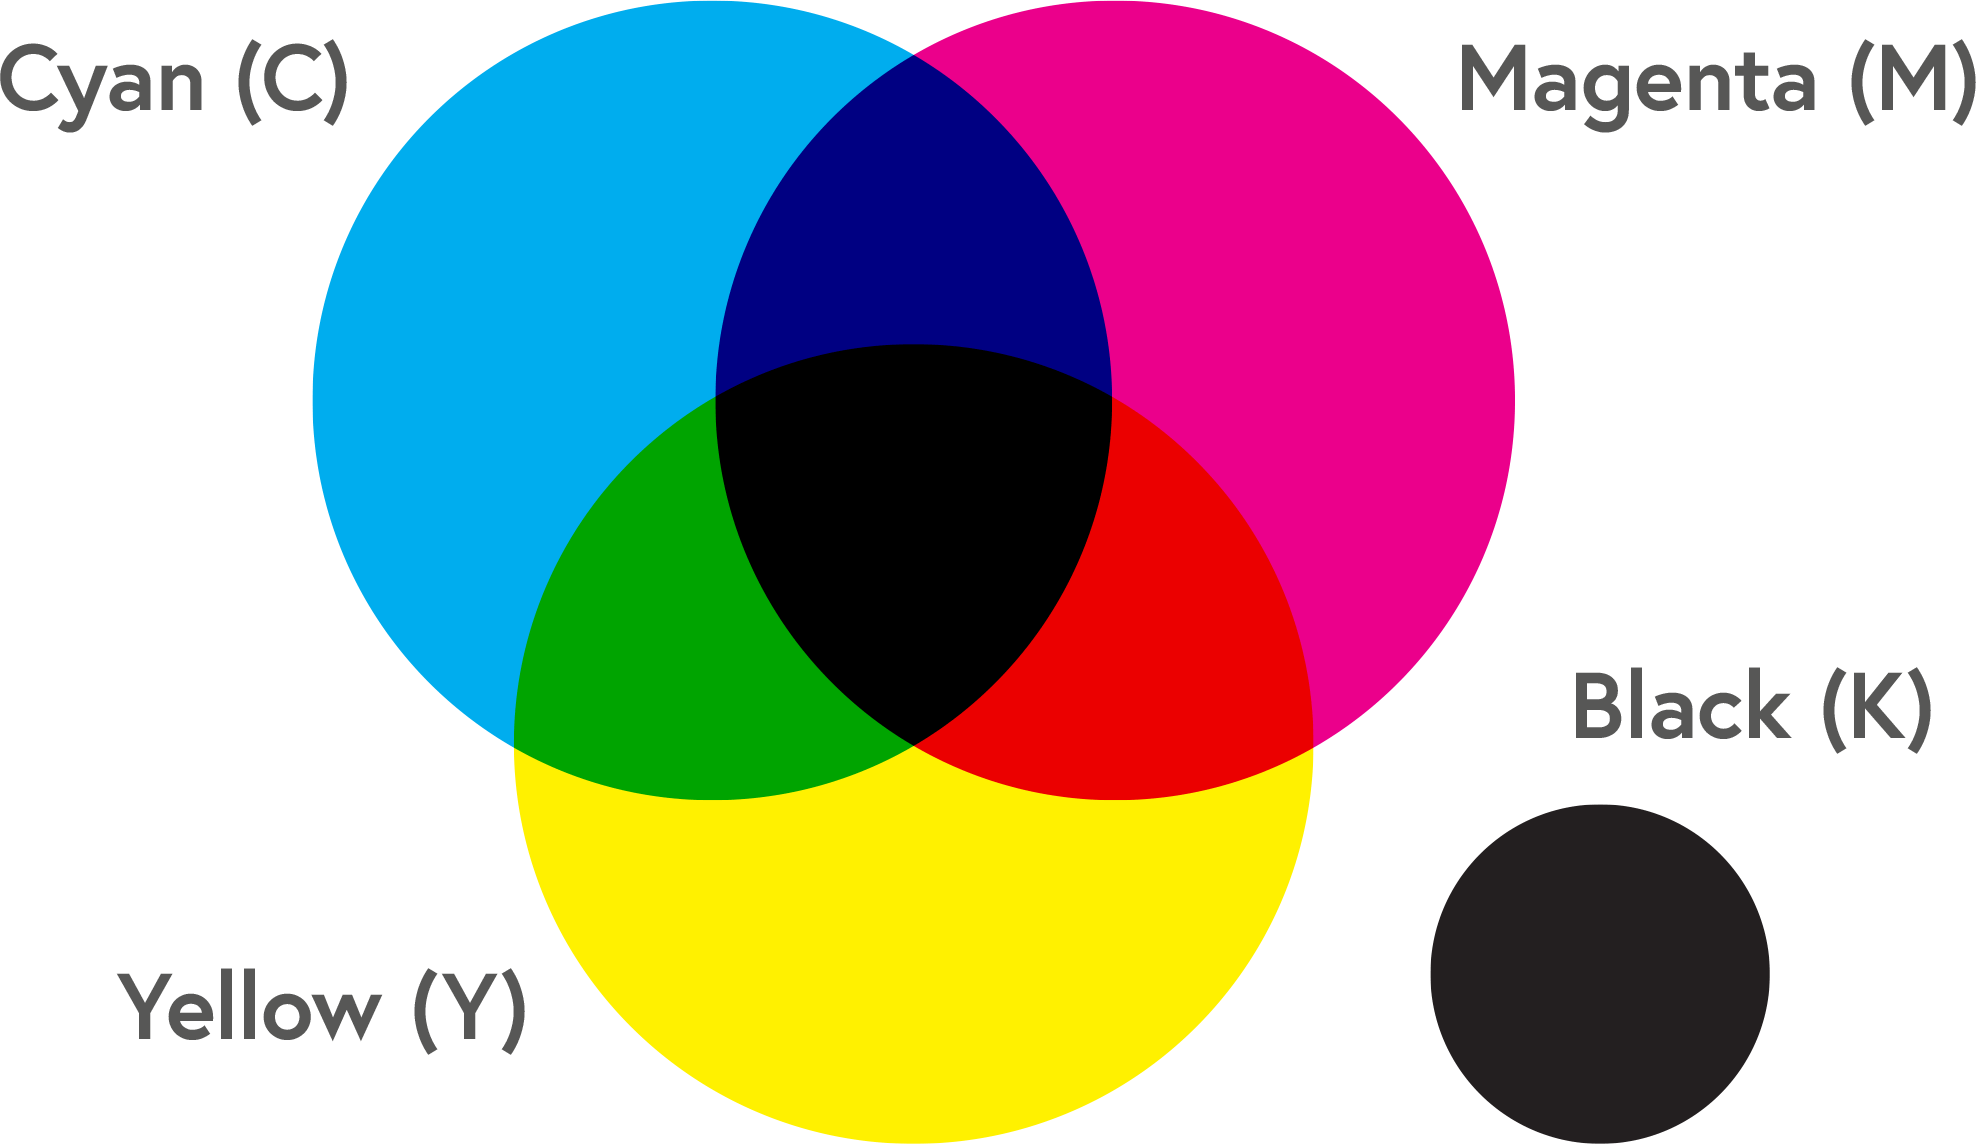 The CMYK colour model